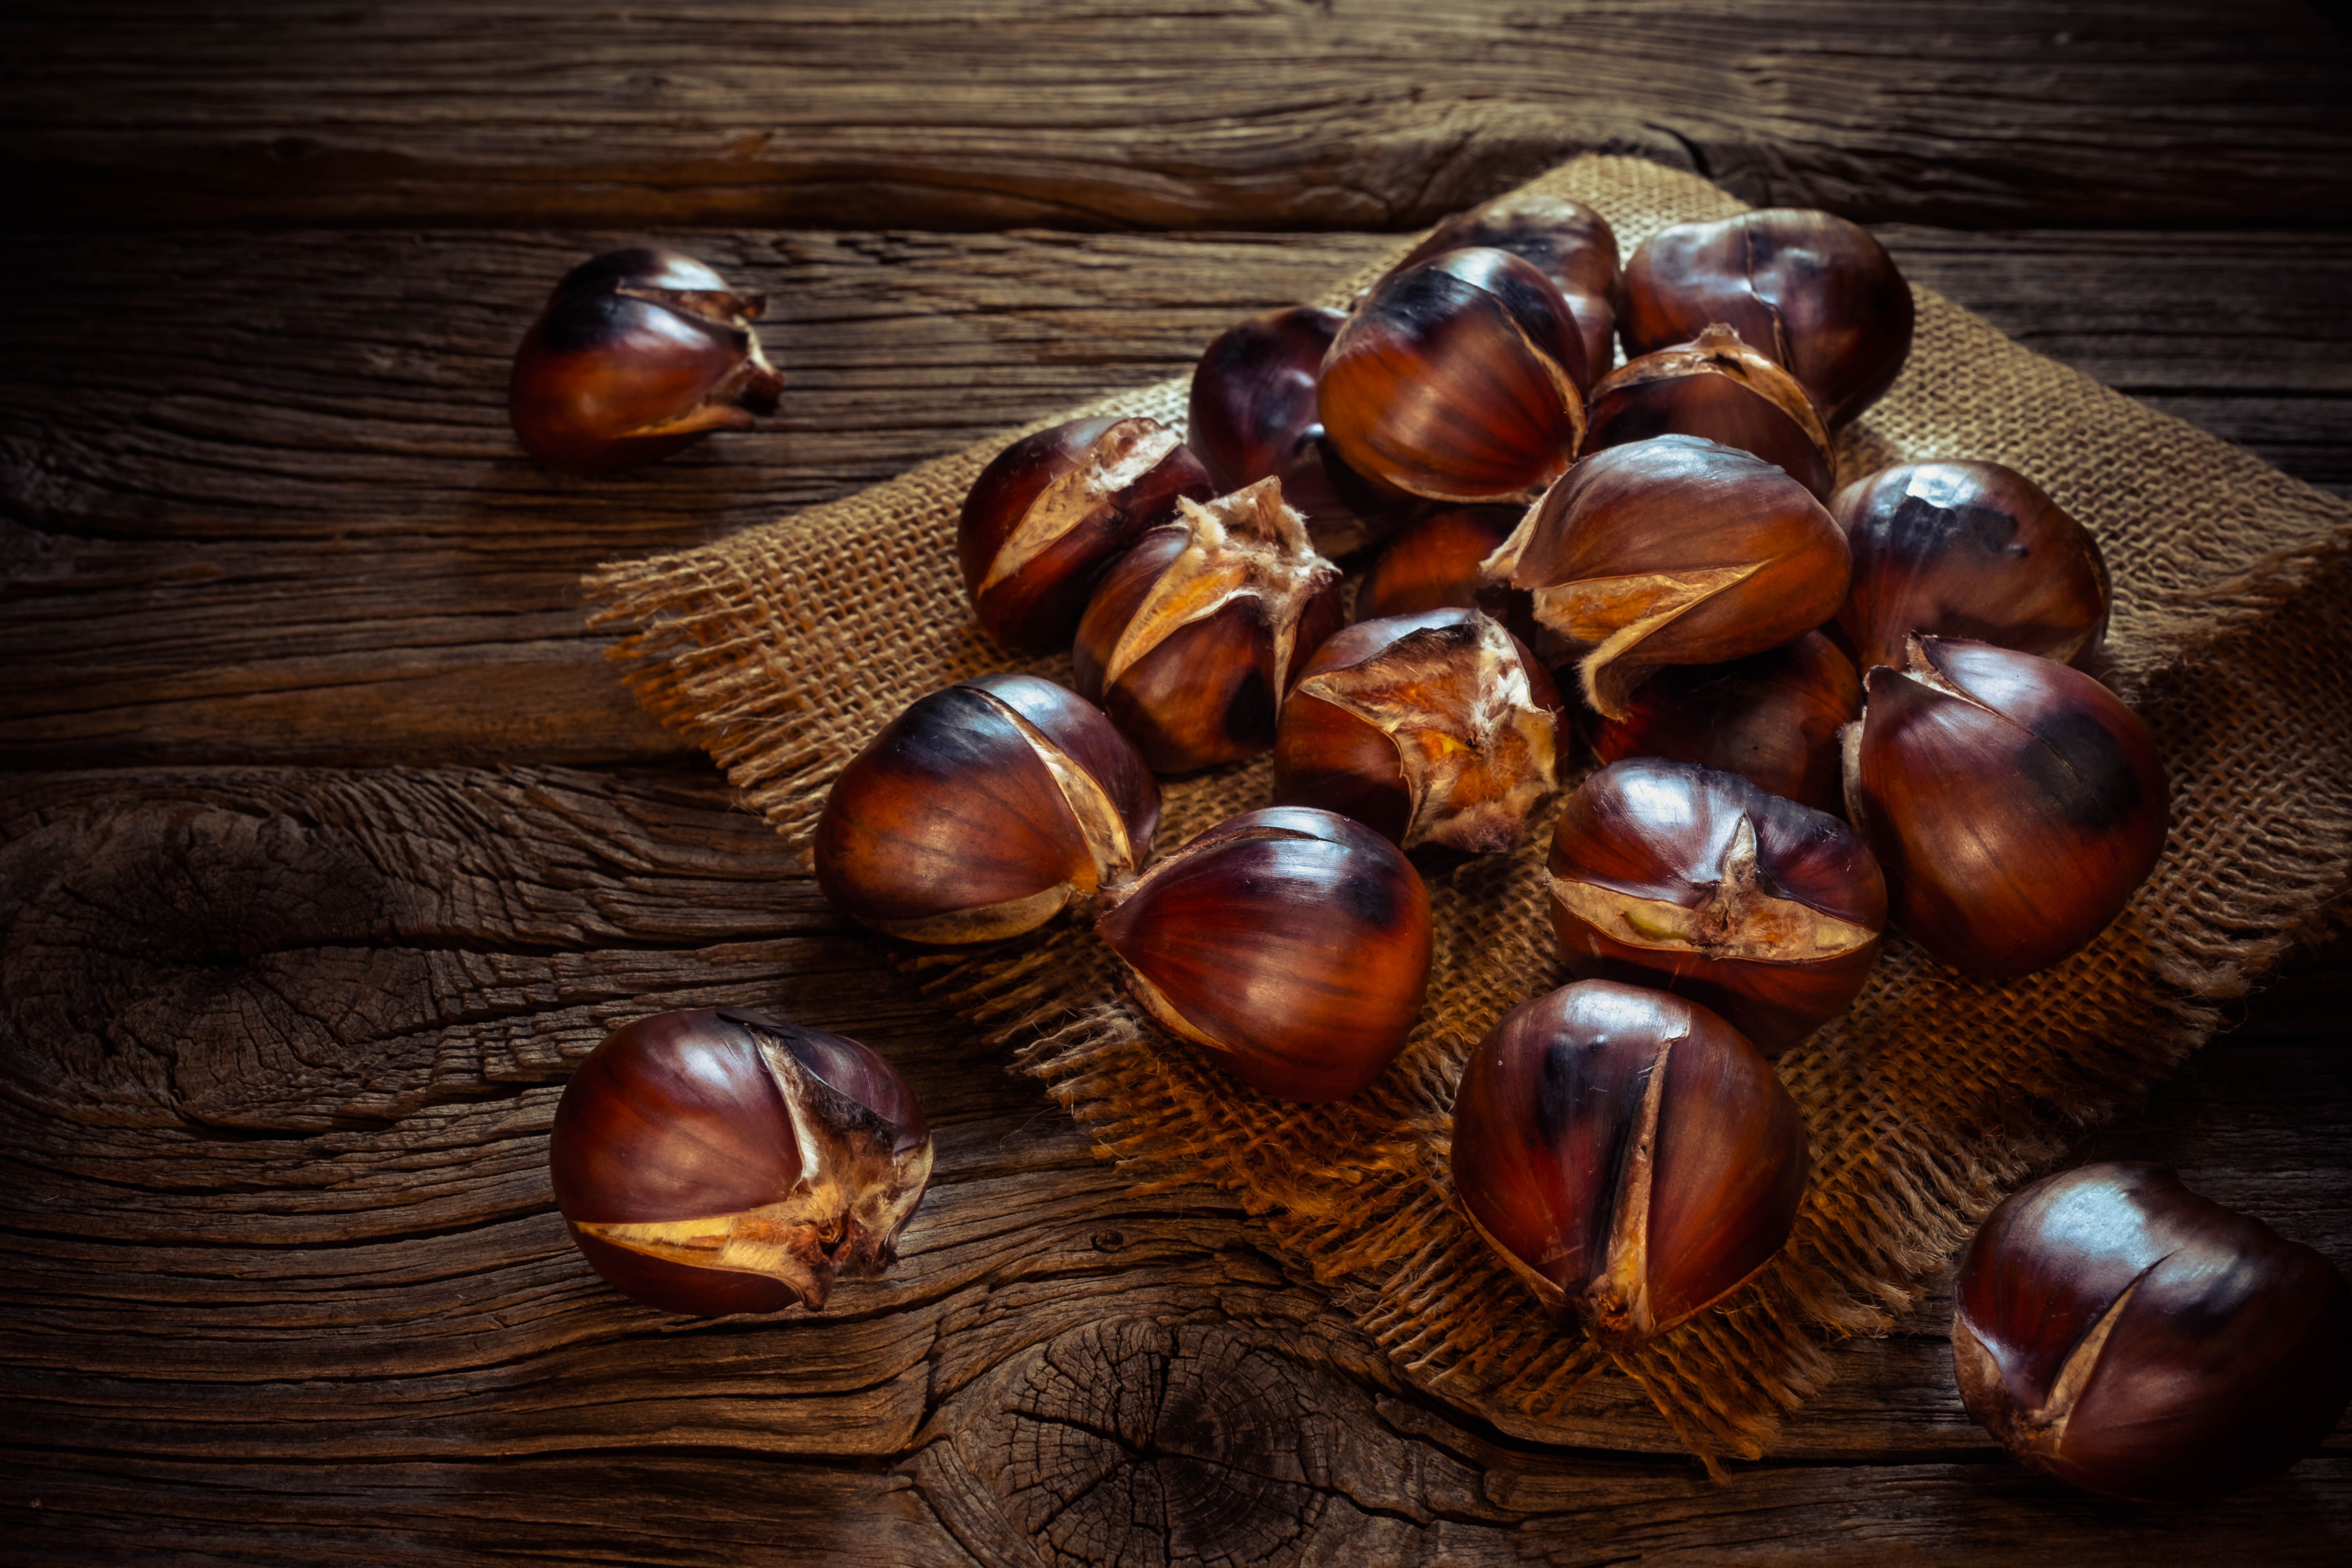 Roasted chestnuts on a sack napkin and wooden background